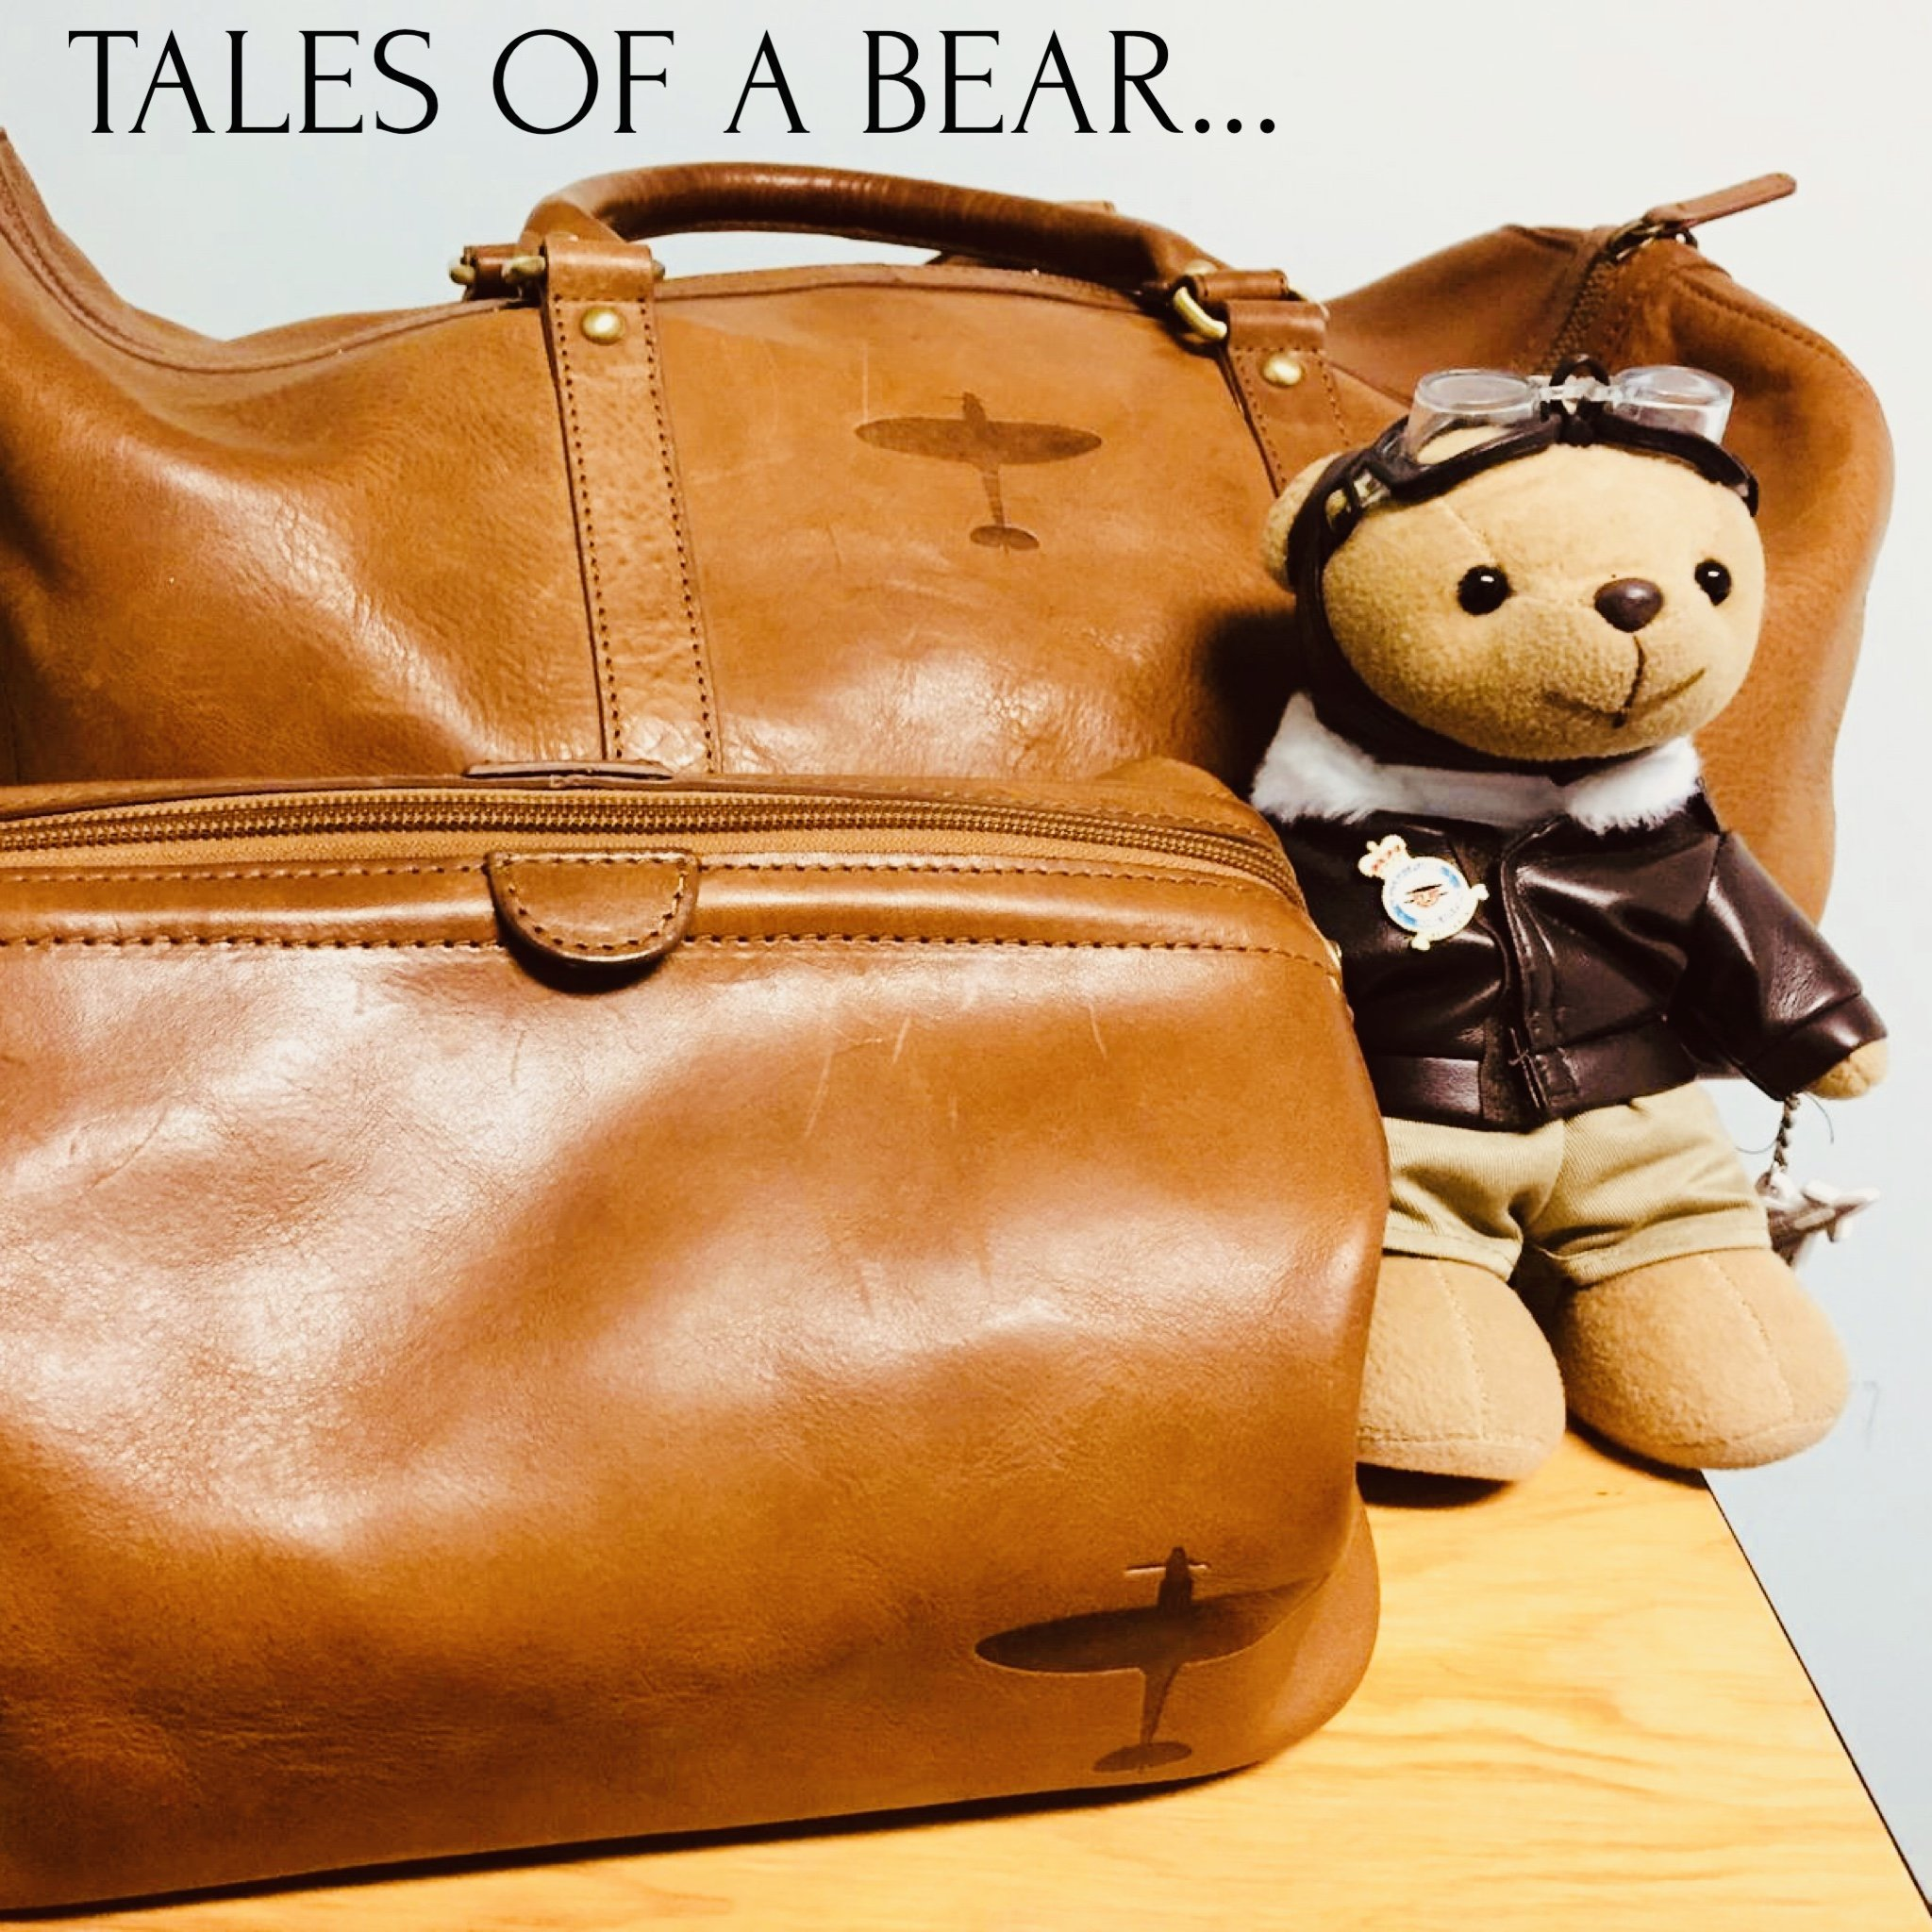 petwood bear with asali spitfire luggage set longest flight